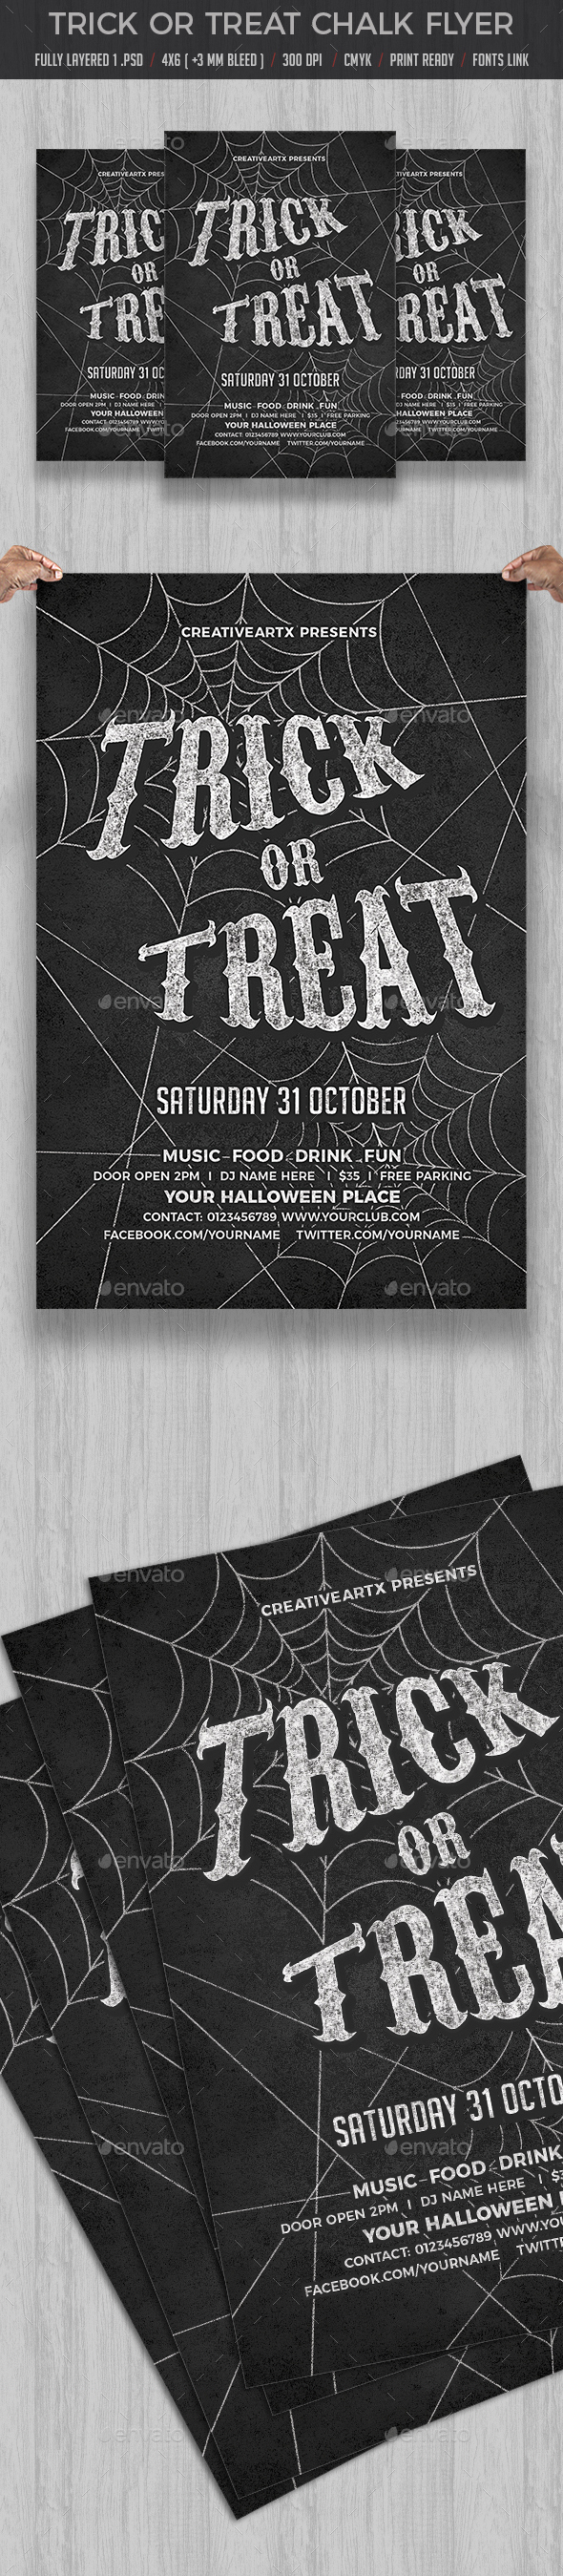 GraphicRiver Trick or Treat Chalk Flyer 20605075